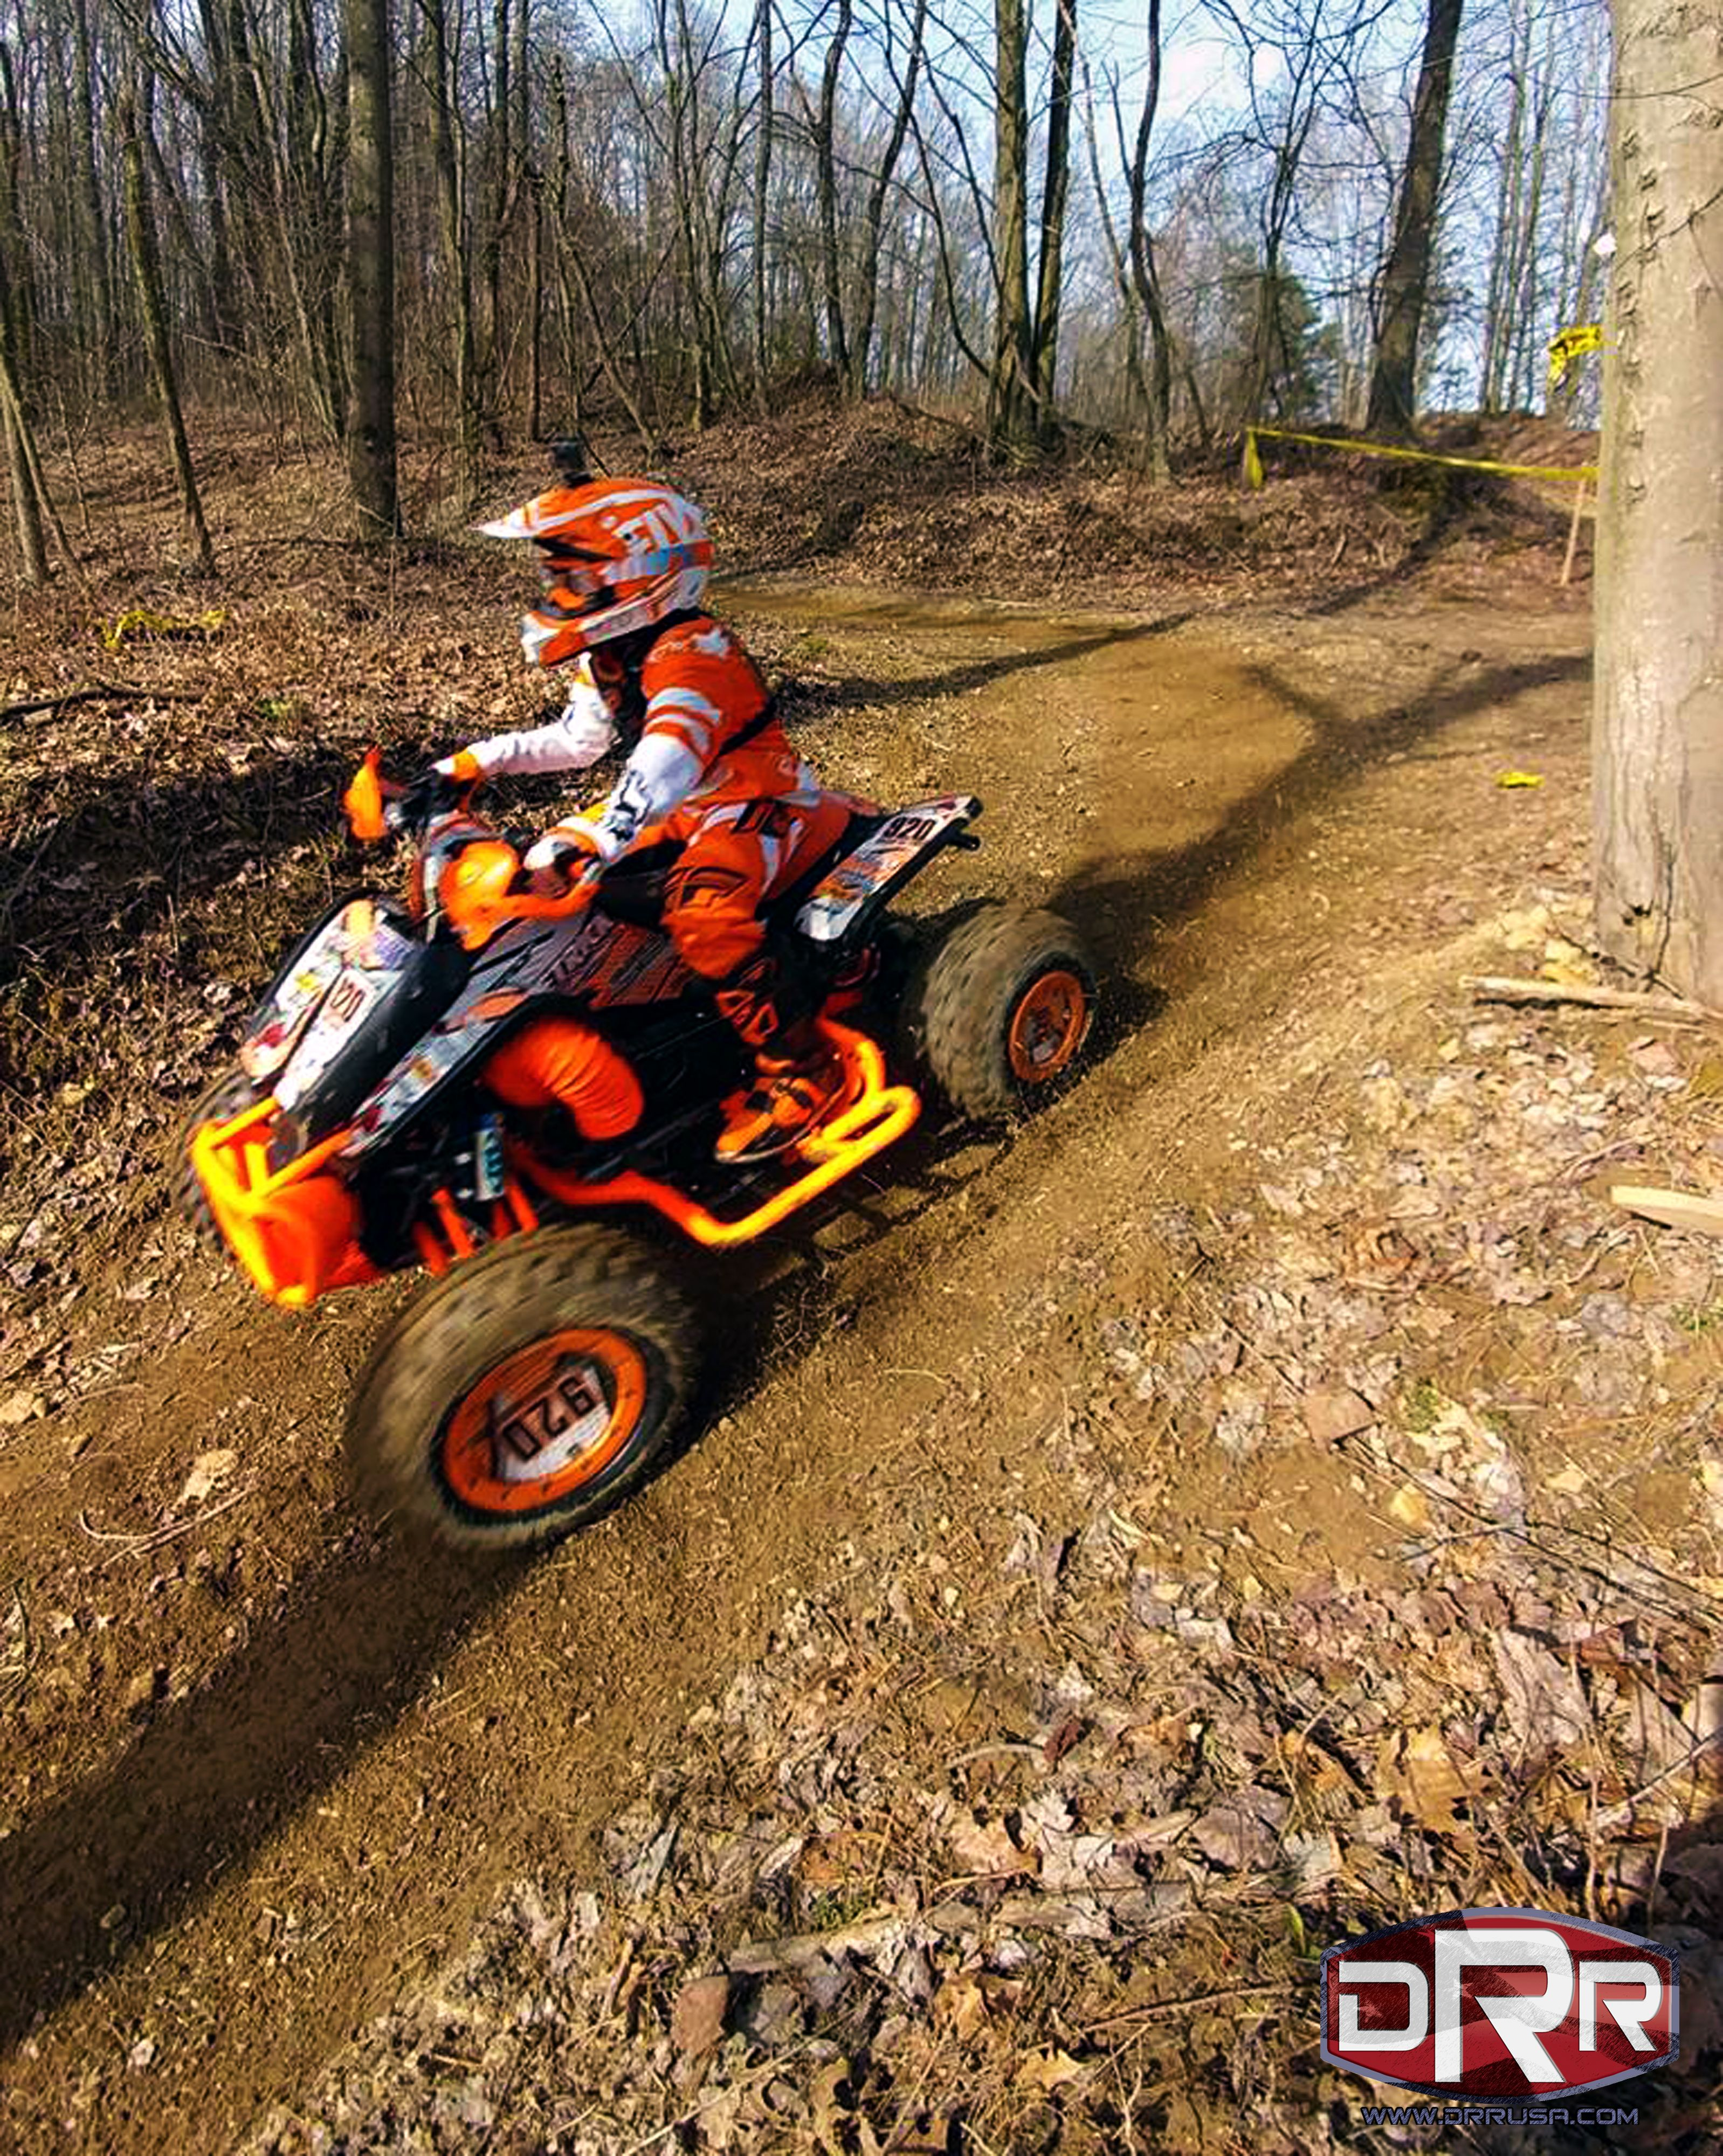 medium resolution of caiden hays at eroc round 1 crow canyon riding his drr drx 90cc atv mod placed 1st overall